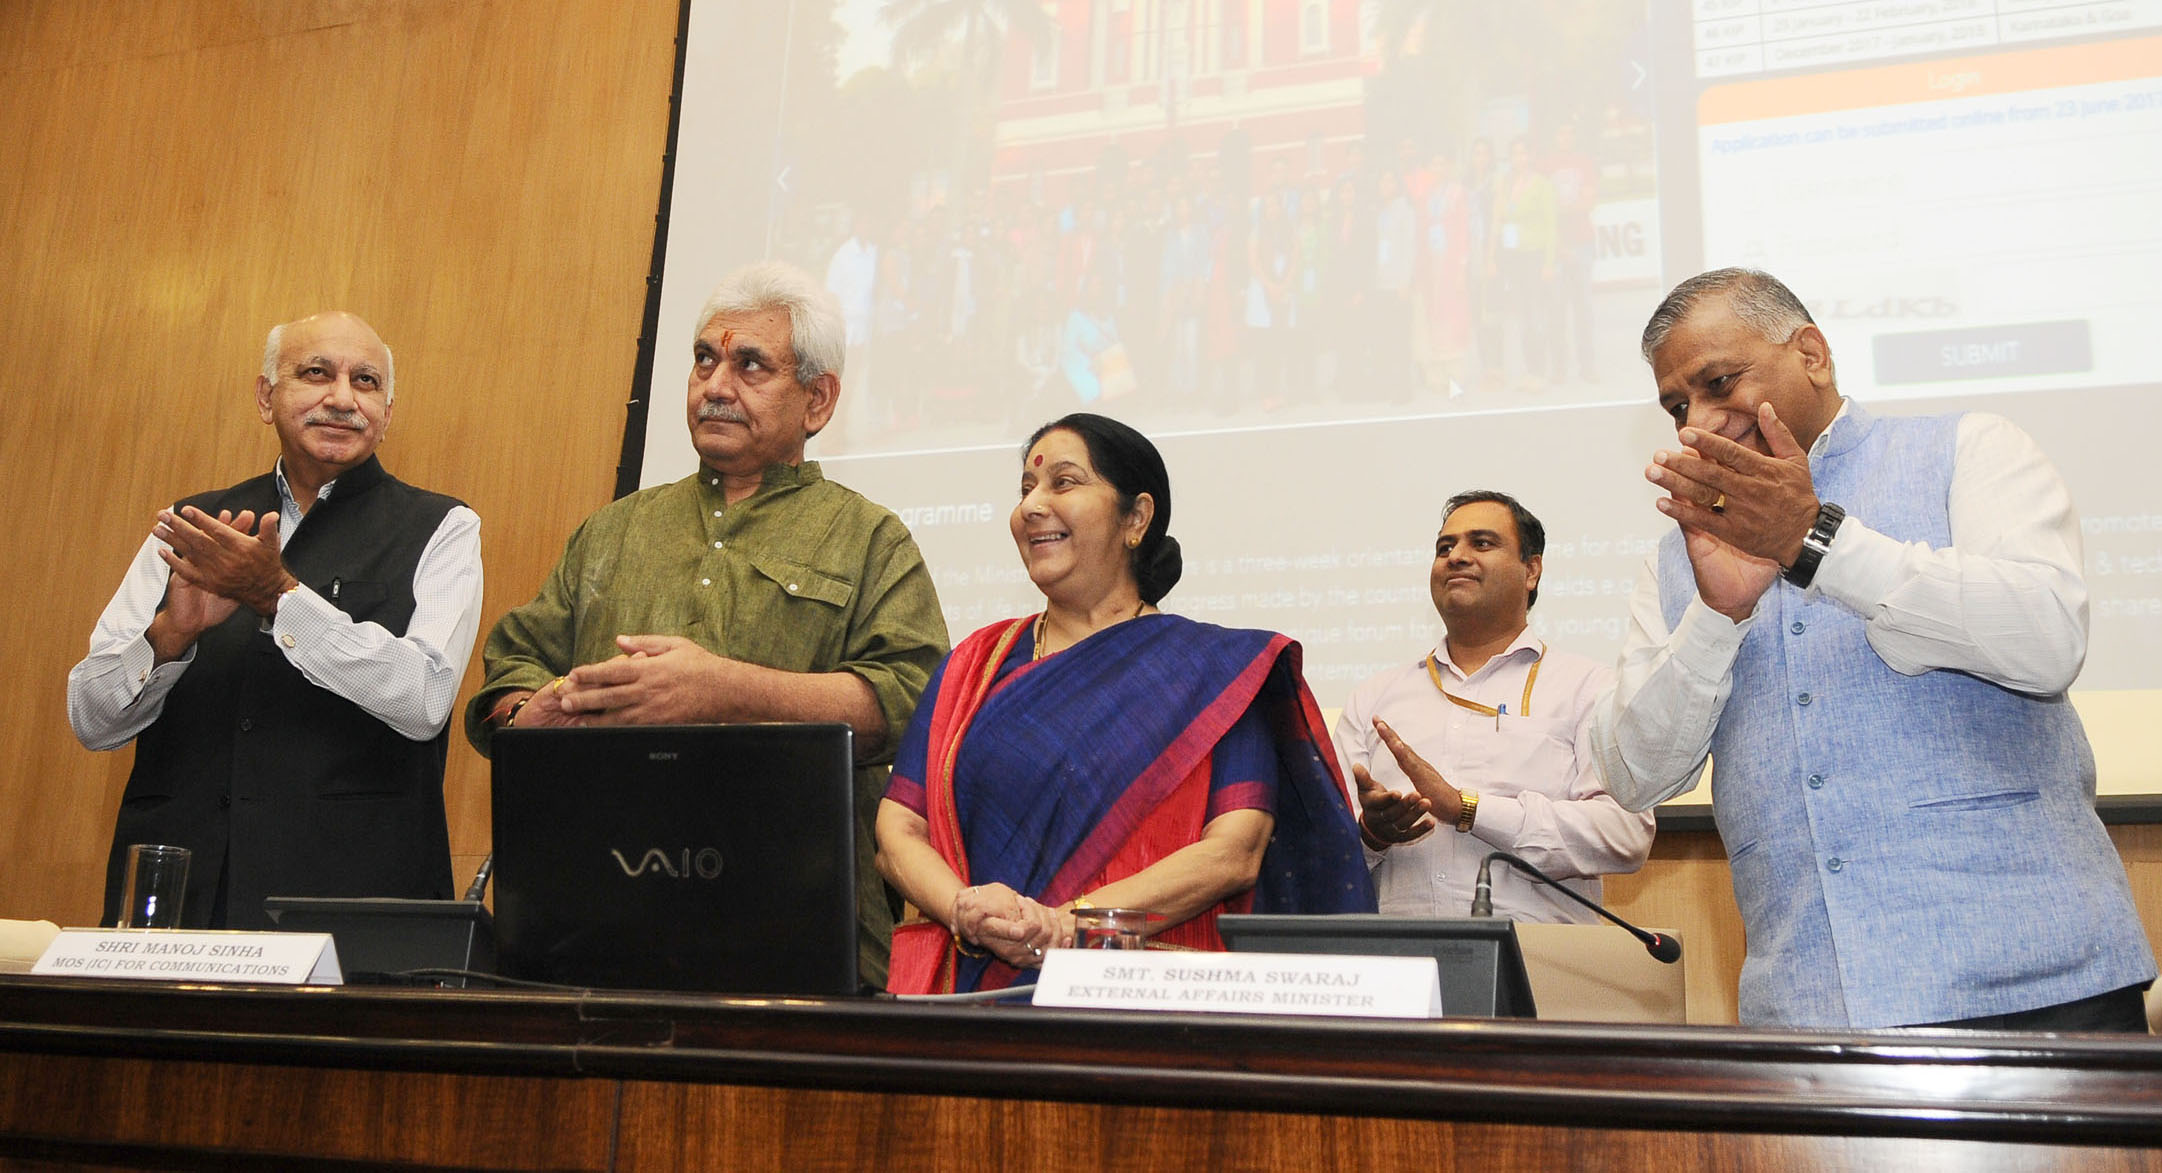 The Minister for External Affairs Sushma Swaraj at the inaugural of Know India Programme Portal and Post Office Passport Seva Kendra in New Delhi recently. Also seen are the Minister of State for Communications and Railways, Manoj Sinha (2nd Right) and the Ministers of State for External Affairs, General Dr. V K Singh (Right) and M J Akbar (Left).